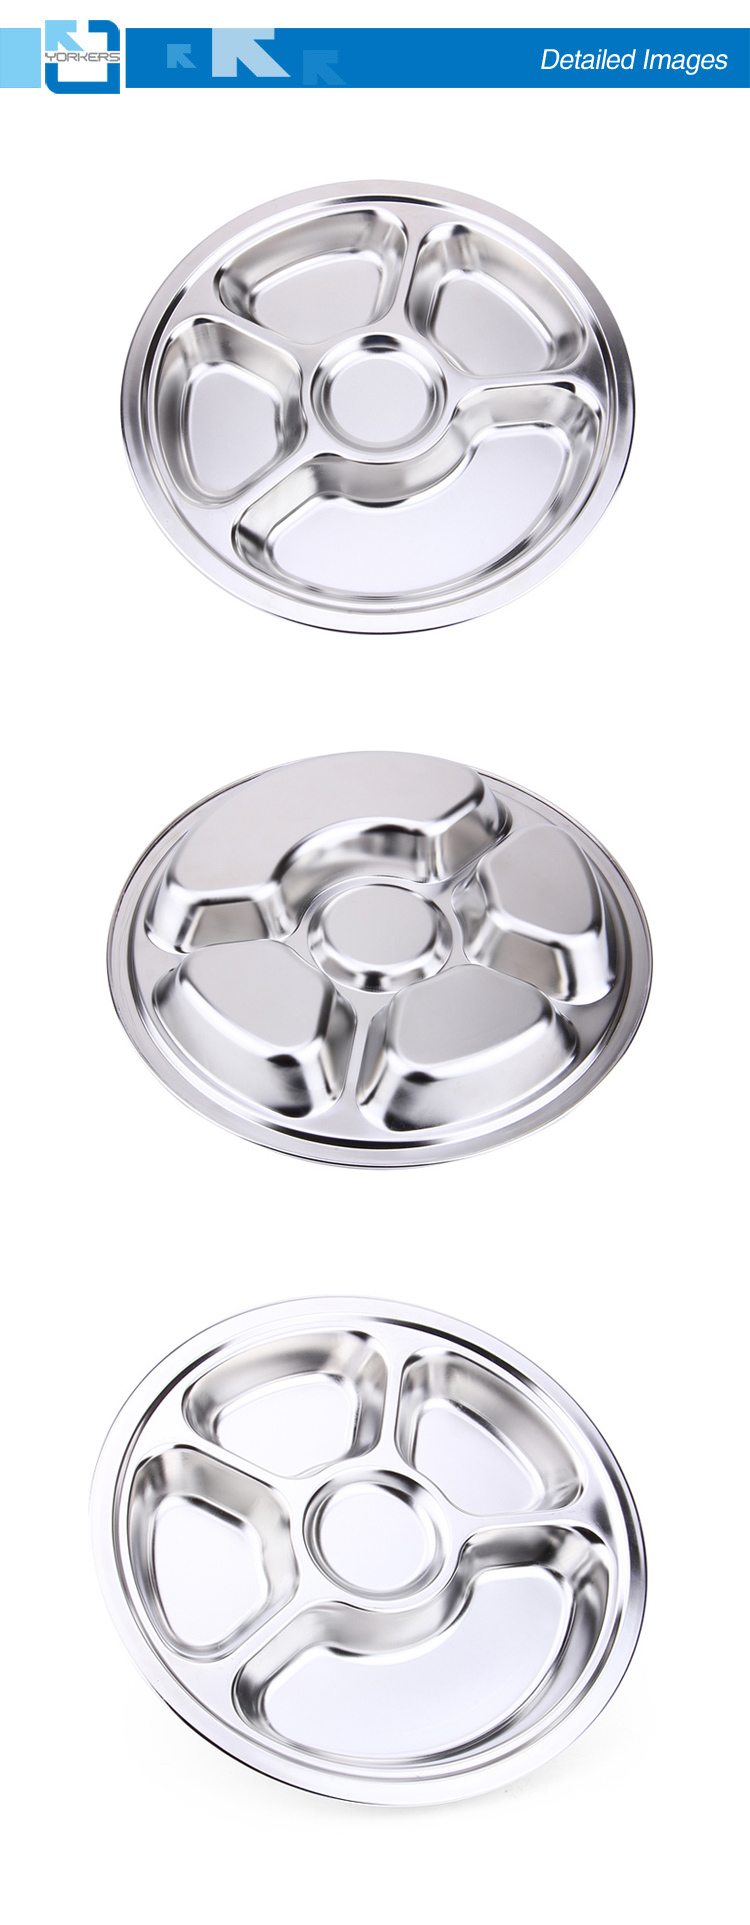 5 Compartment School Lunch Box/Stainless Steel Round Lunch Plate